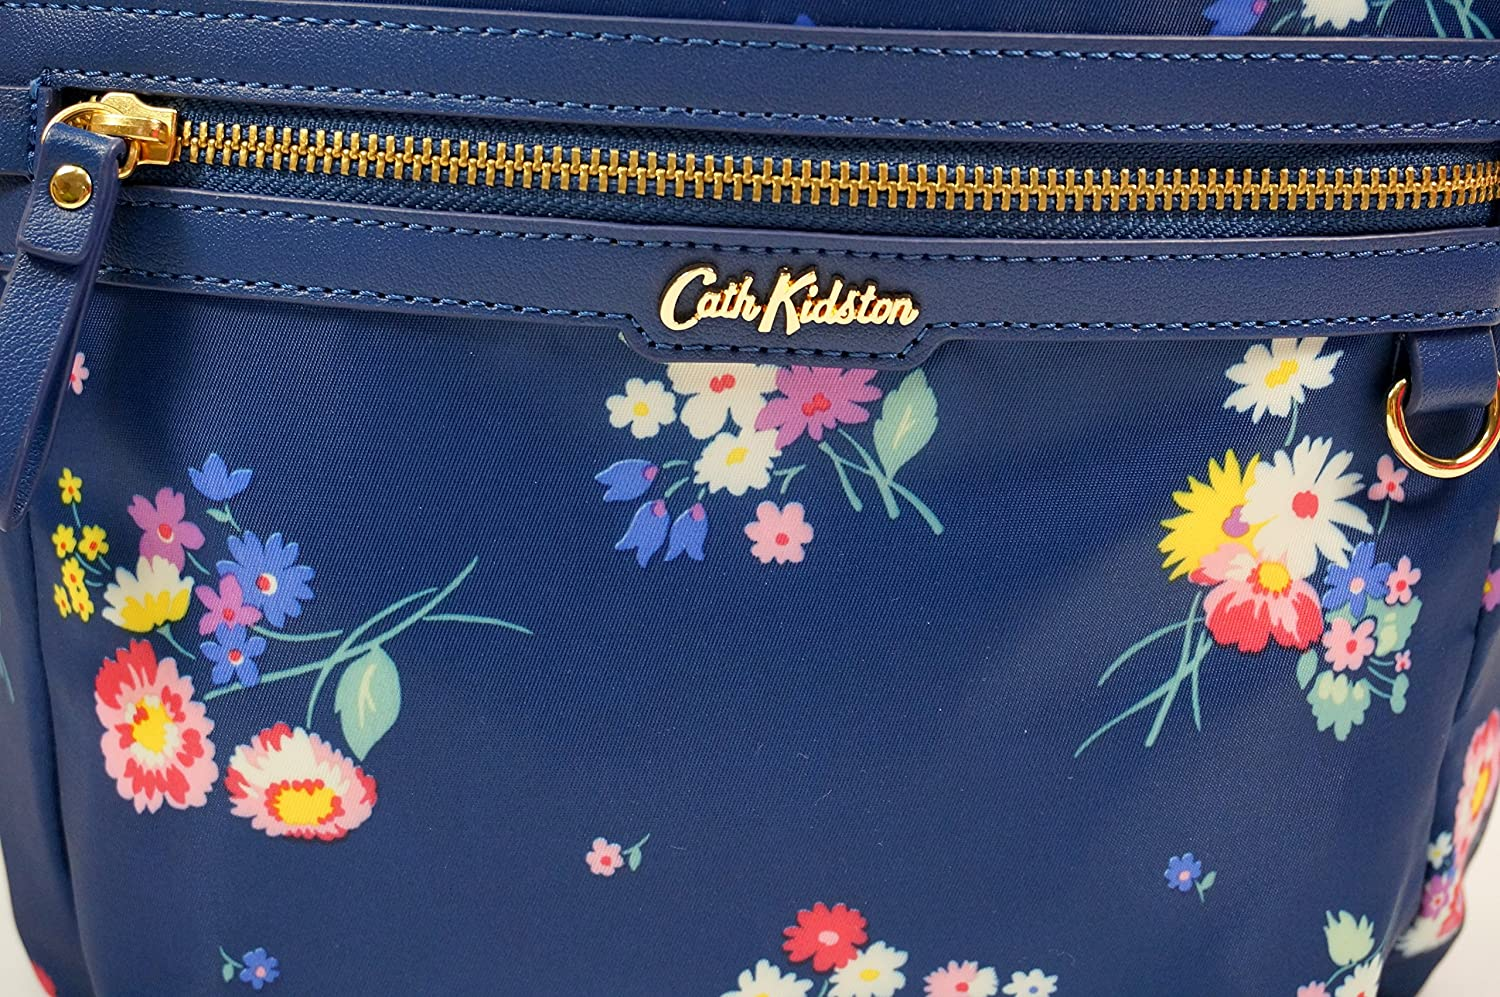 22362b66fb Cath Kidston Aster Backpack Busby Bunch Floral Navy  Amazon.co.uk  Luggage